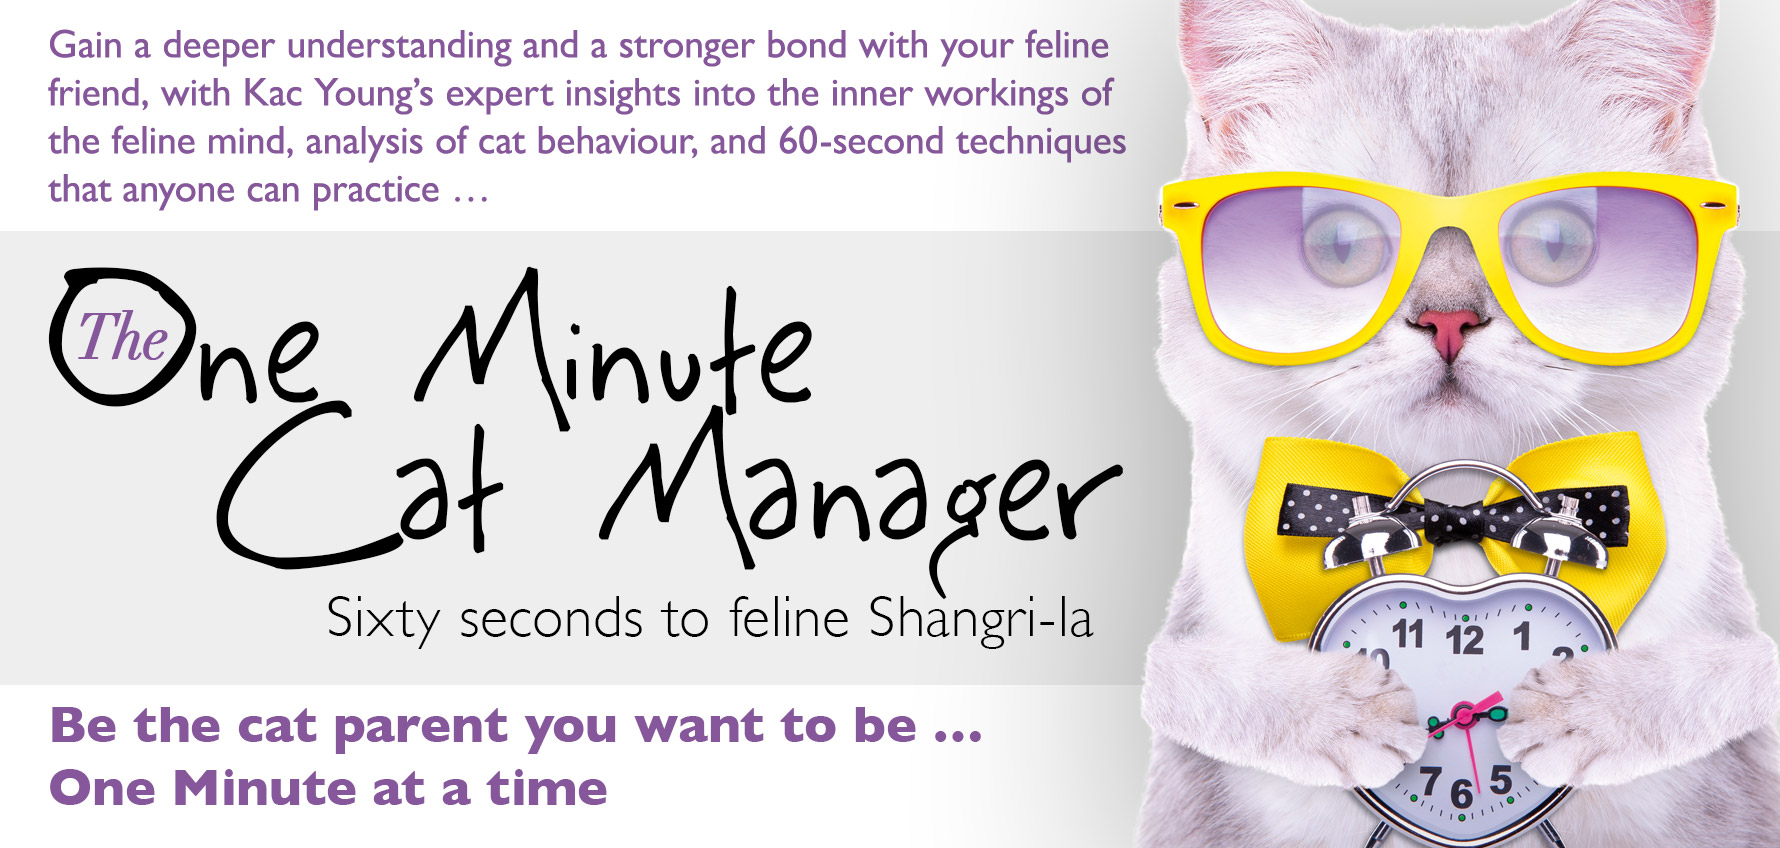 The One Minute Cat Manager by Kac Young – 60 seconds to feline Shangri-La!